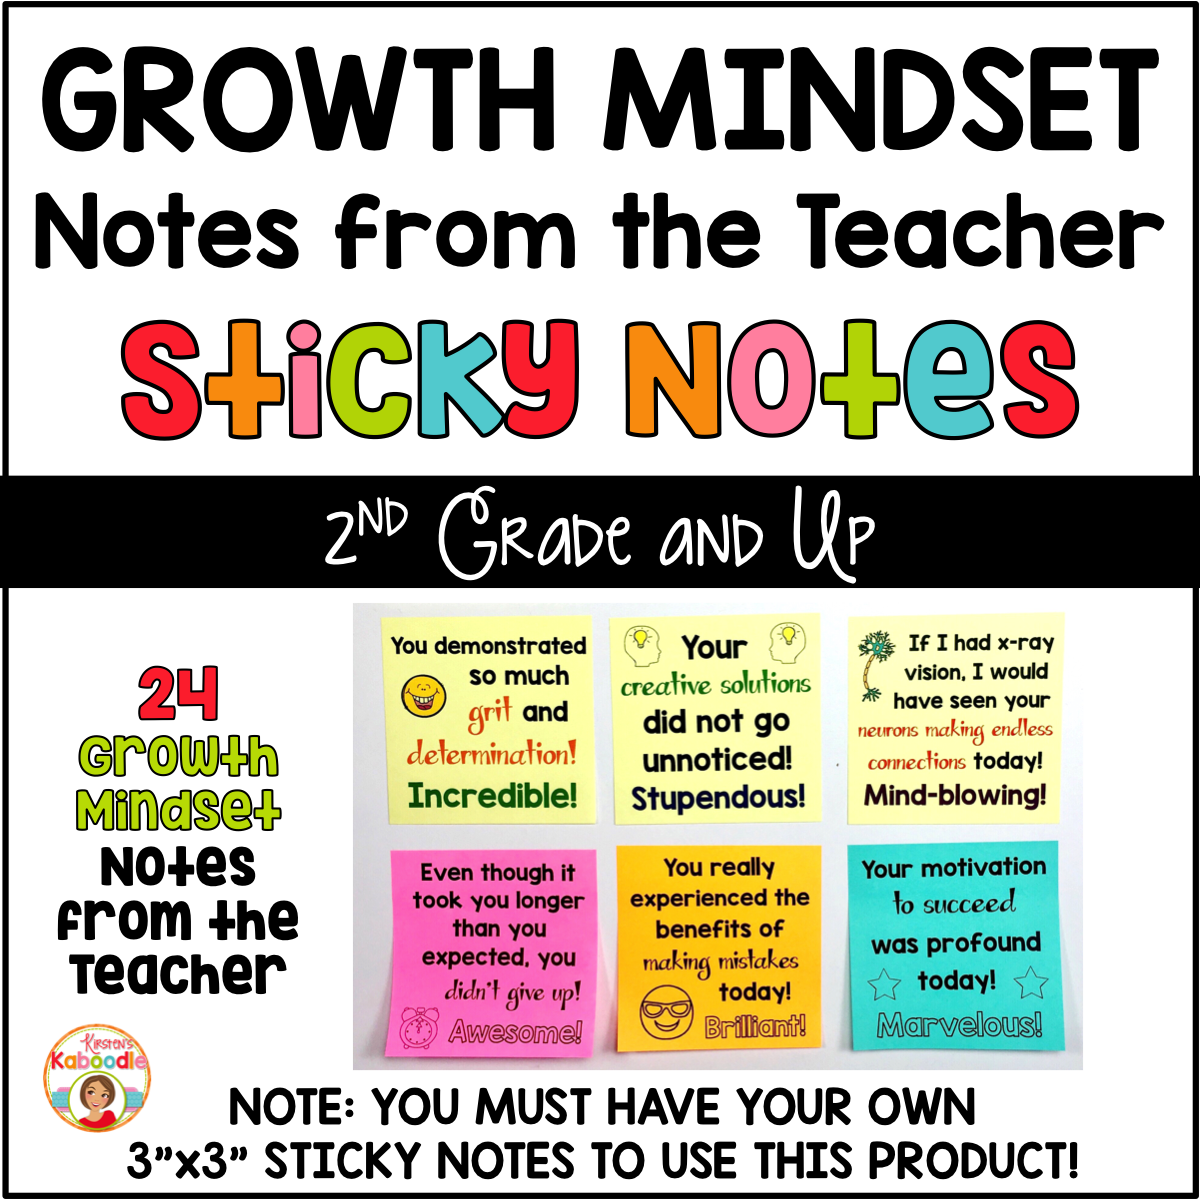 Growth Mindset Sticky Notes from the Teacher COVER